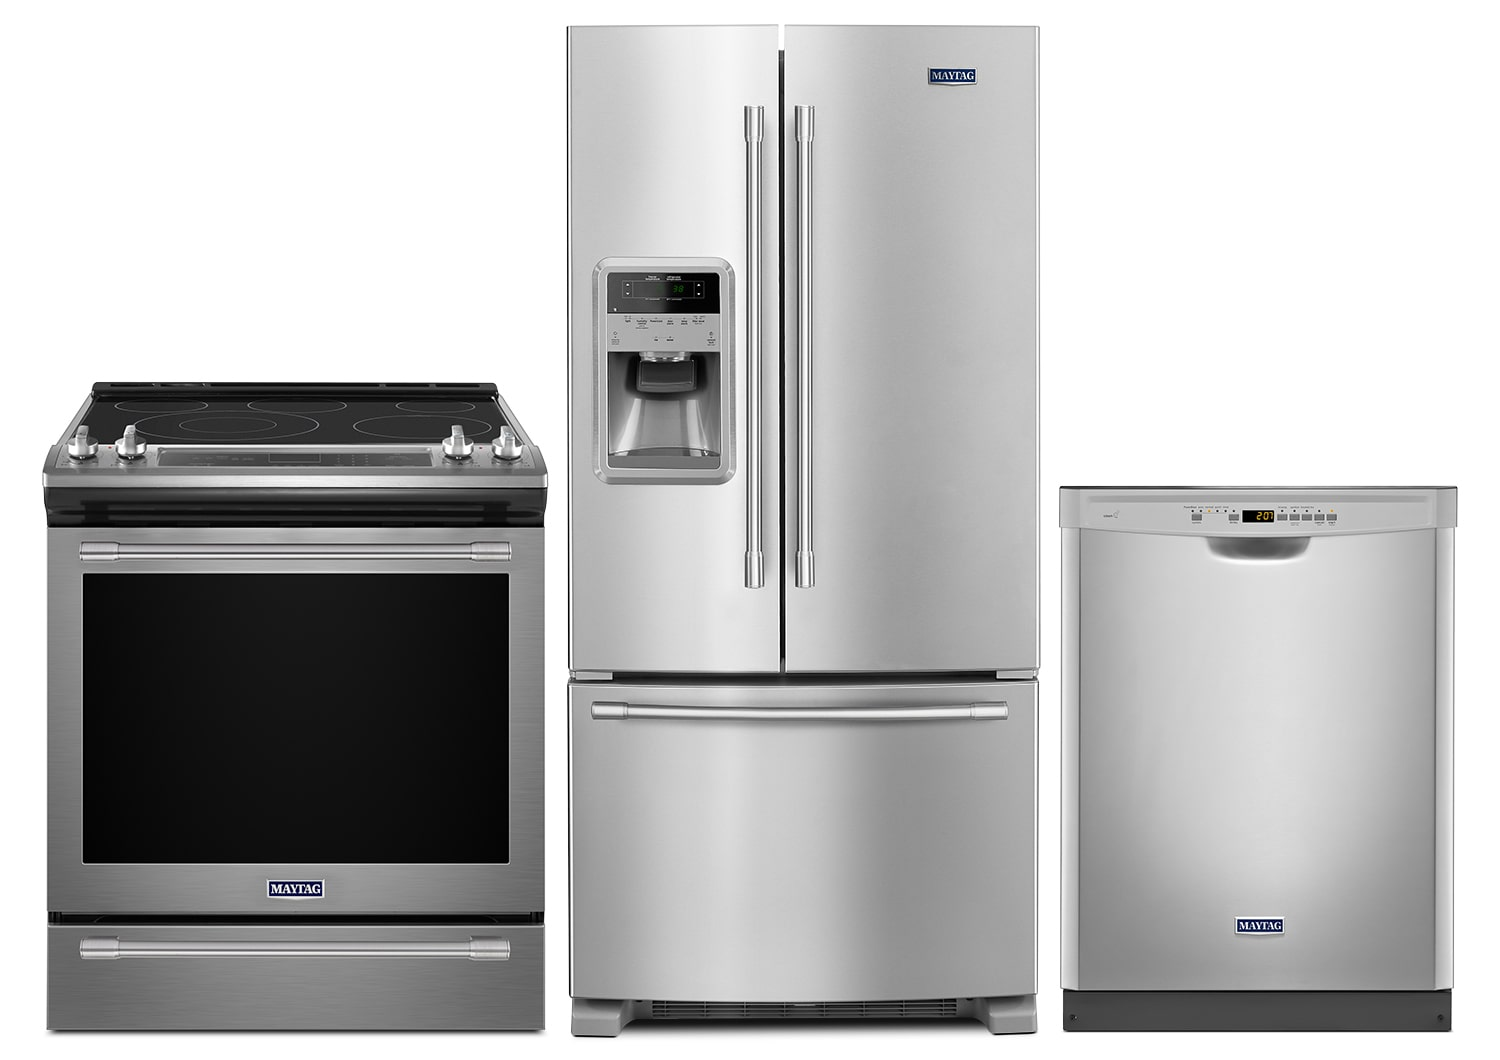 Refrigerators and Freezers - Maytag 22 Cu. Ft. French-Door Refrigerator, 6.4 Cu. Ft. Electric Range and Built-In Dishwasher